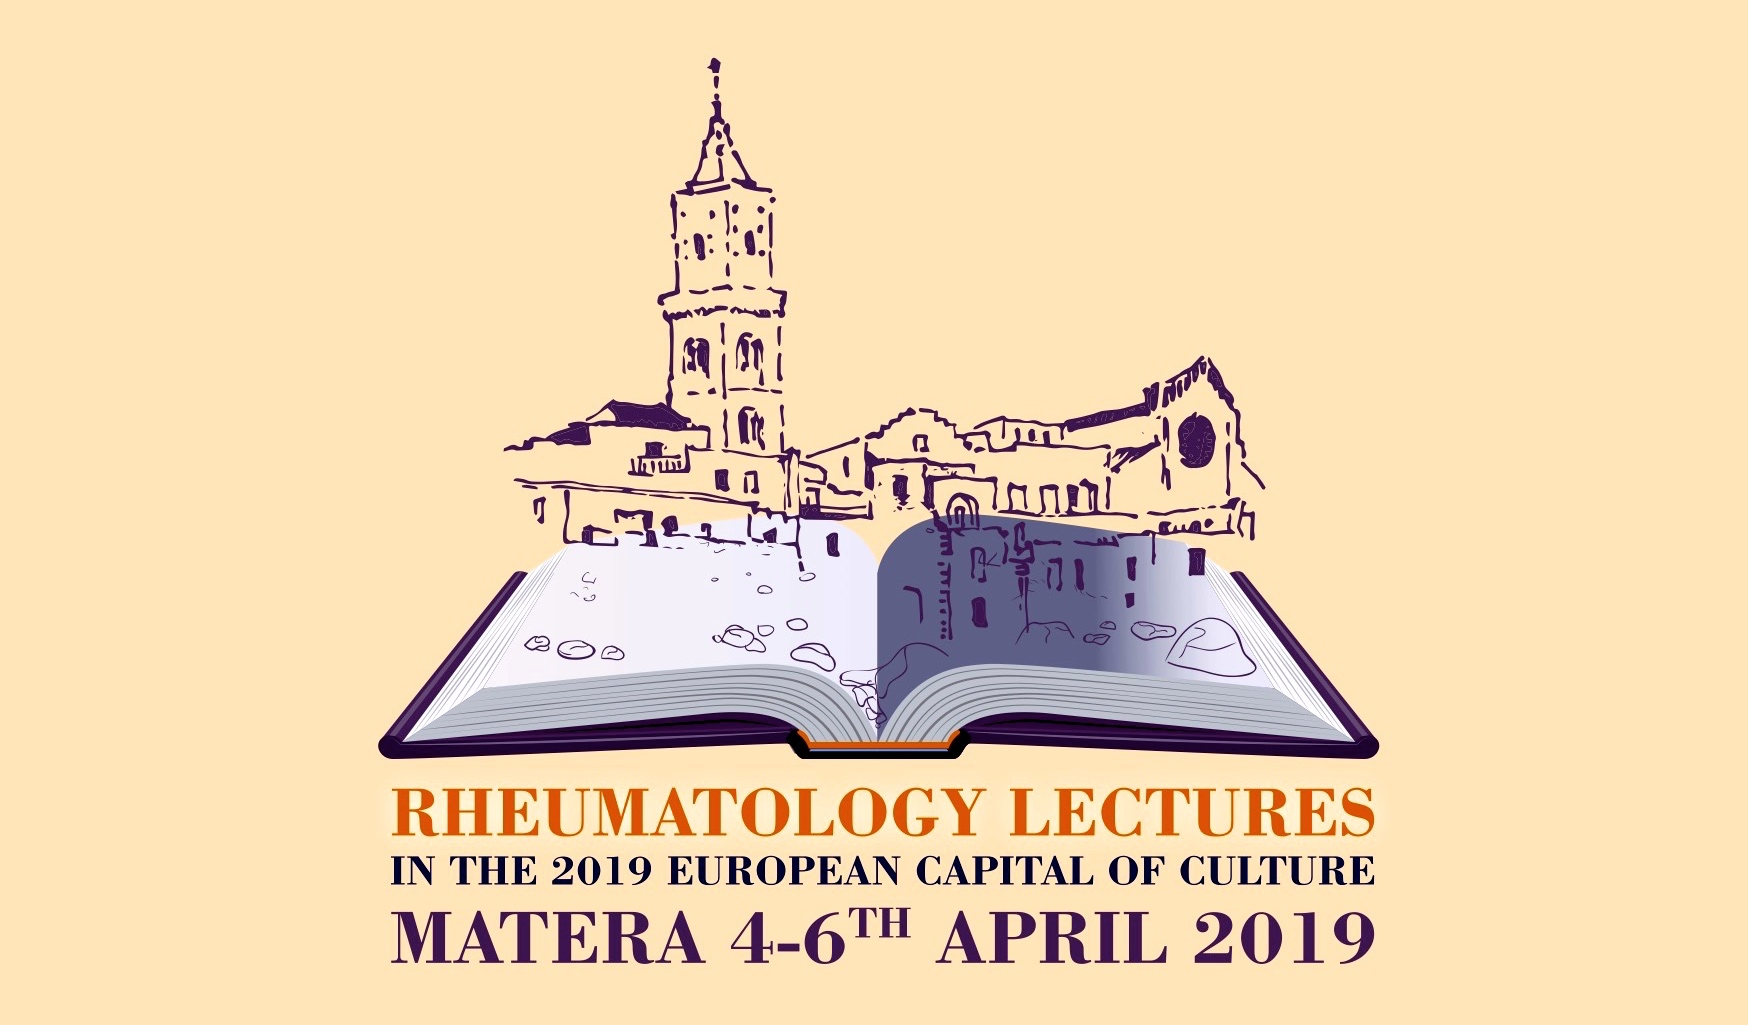 FOTO HOME RHEUMATOLOGY LECTURES